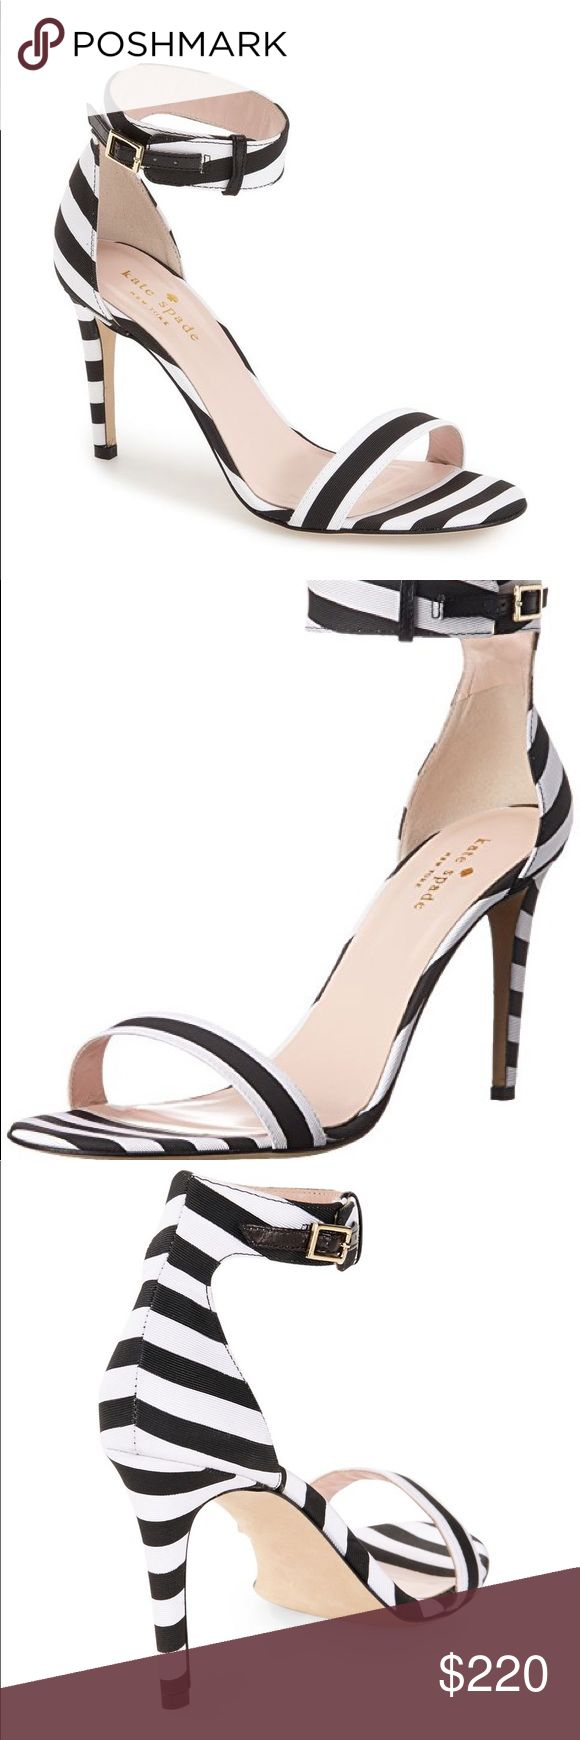 "NEW Kate Spade NY ♠️ Isa Striped Heel Sandals Stunning heels in classic bold Kate Spade stripes. Wonderful sleek and secure fit, thanks to the ankle buckle. Brand new! Originally purchased from Lord & Taylor, super popular style and long sold out - impossible to find anywhere!  ♠️Dressed up sandal with high-contrast stripes ♠️Self-covered heel, 3"" ♠️Textile upper ♠️Leather lining and sole ♠️Made in Italy kate spade Shoes Heels"